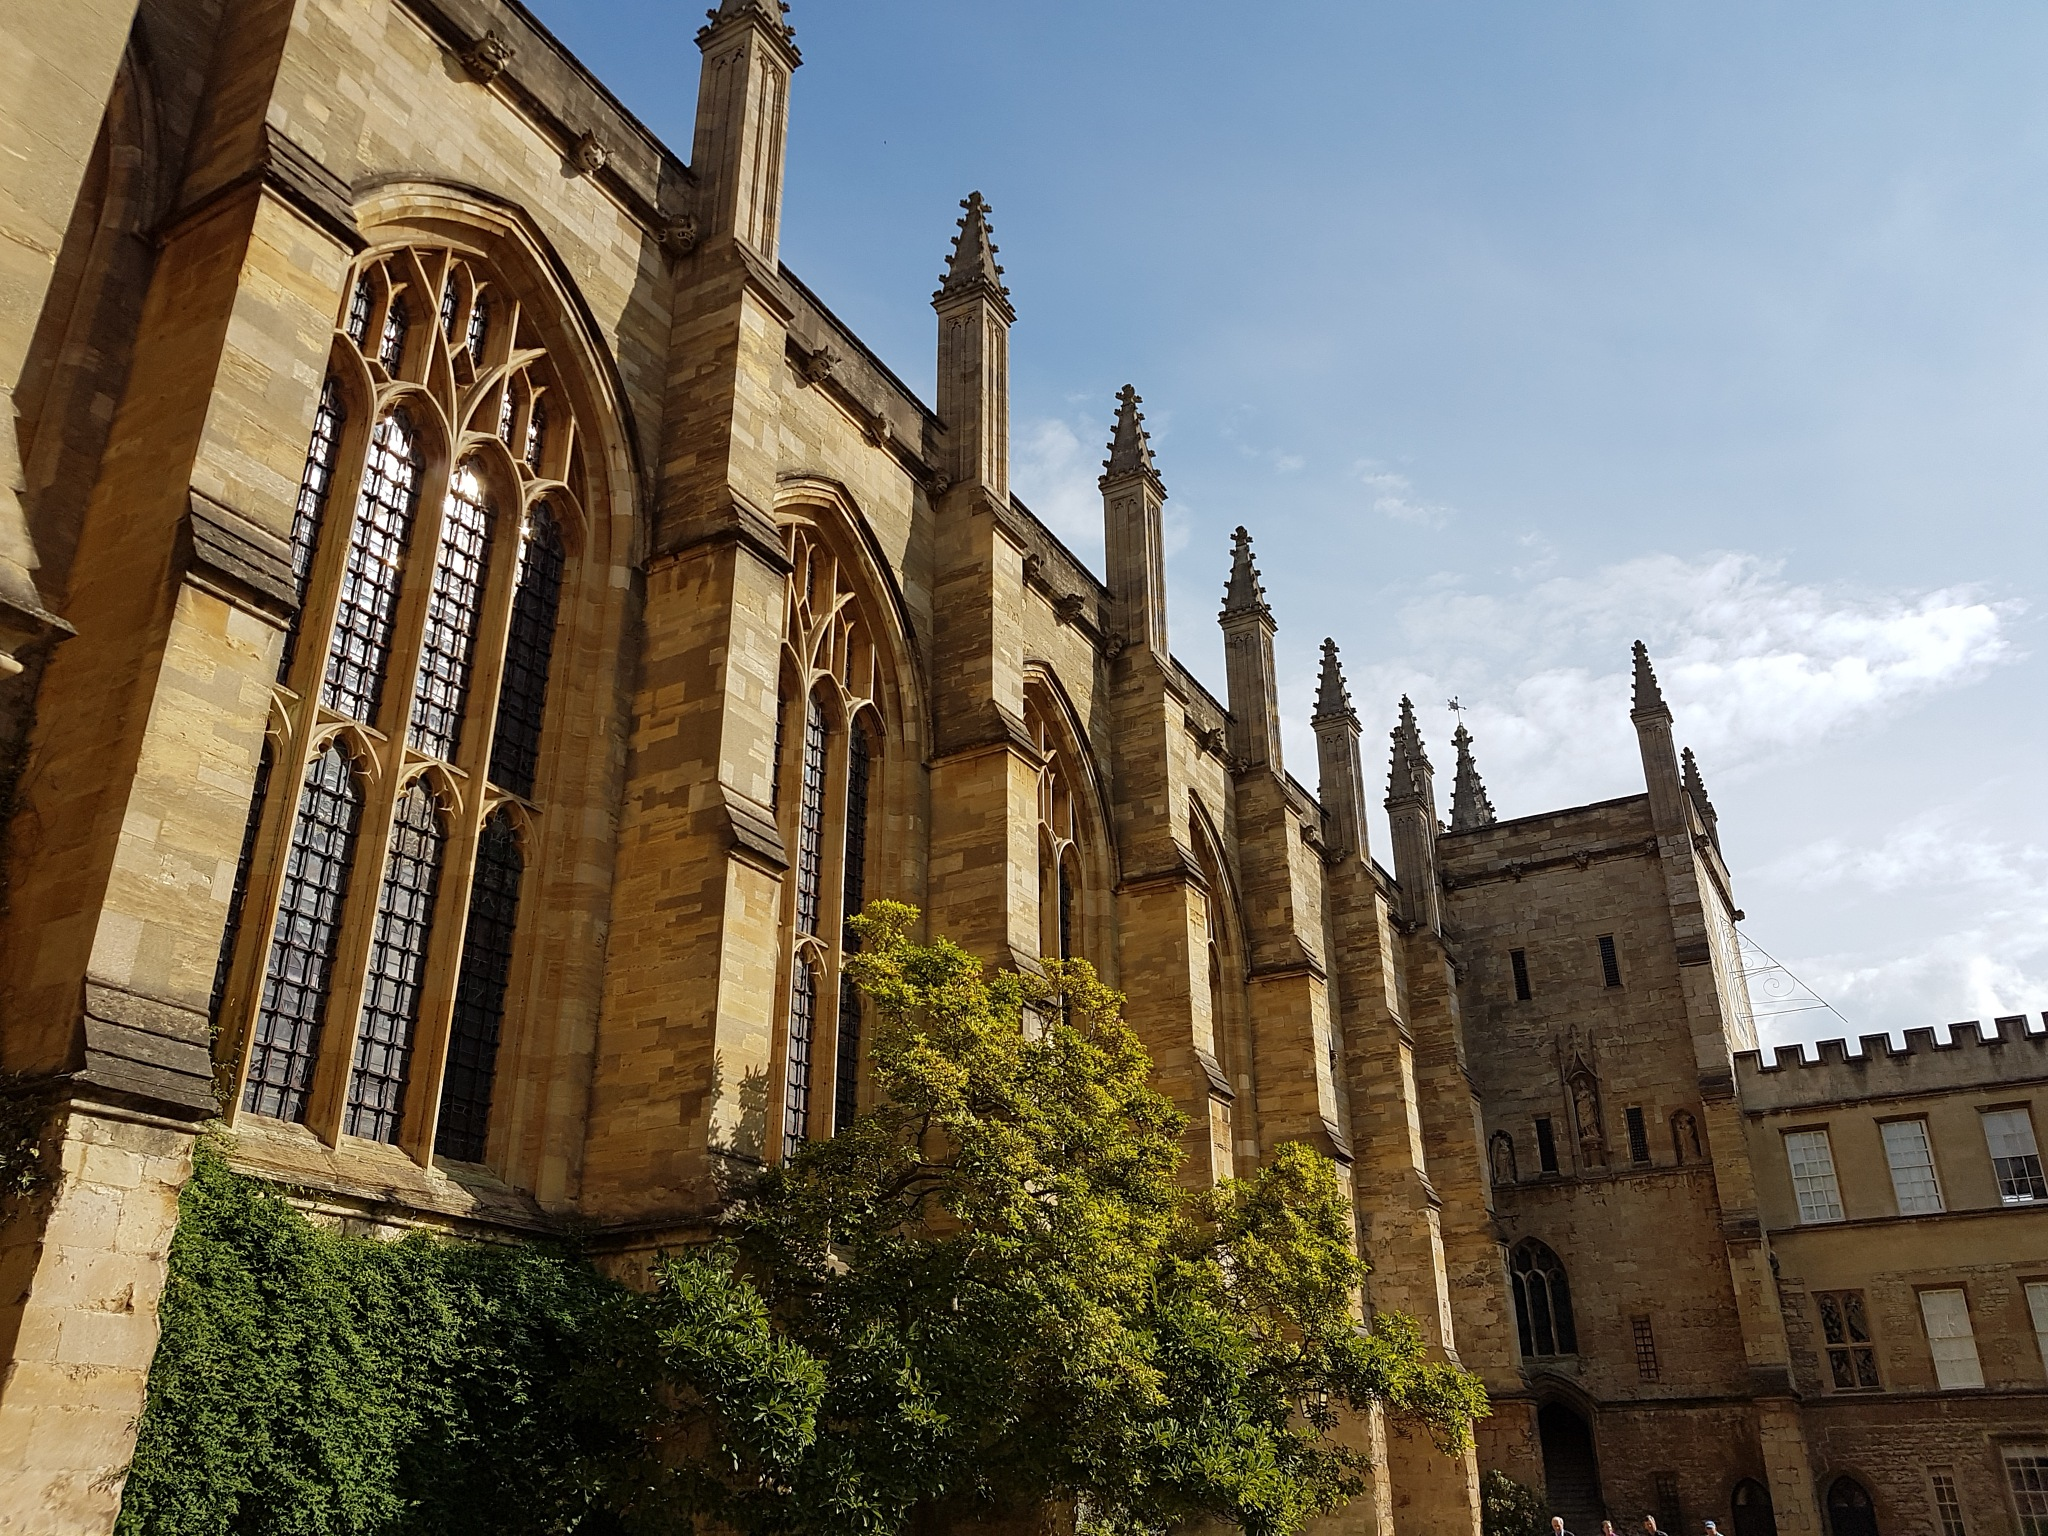 New College Oxford  by JayneG